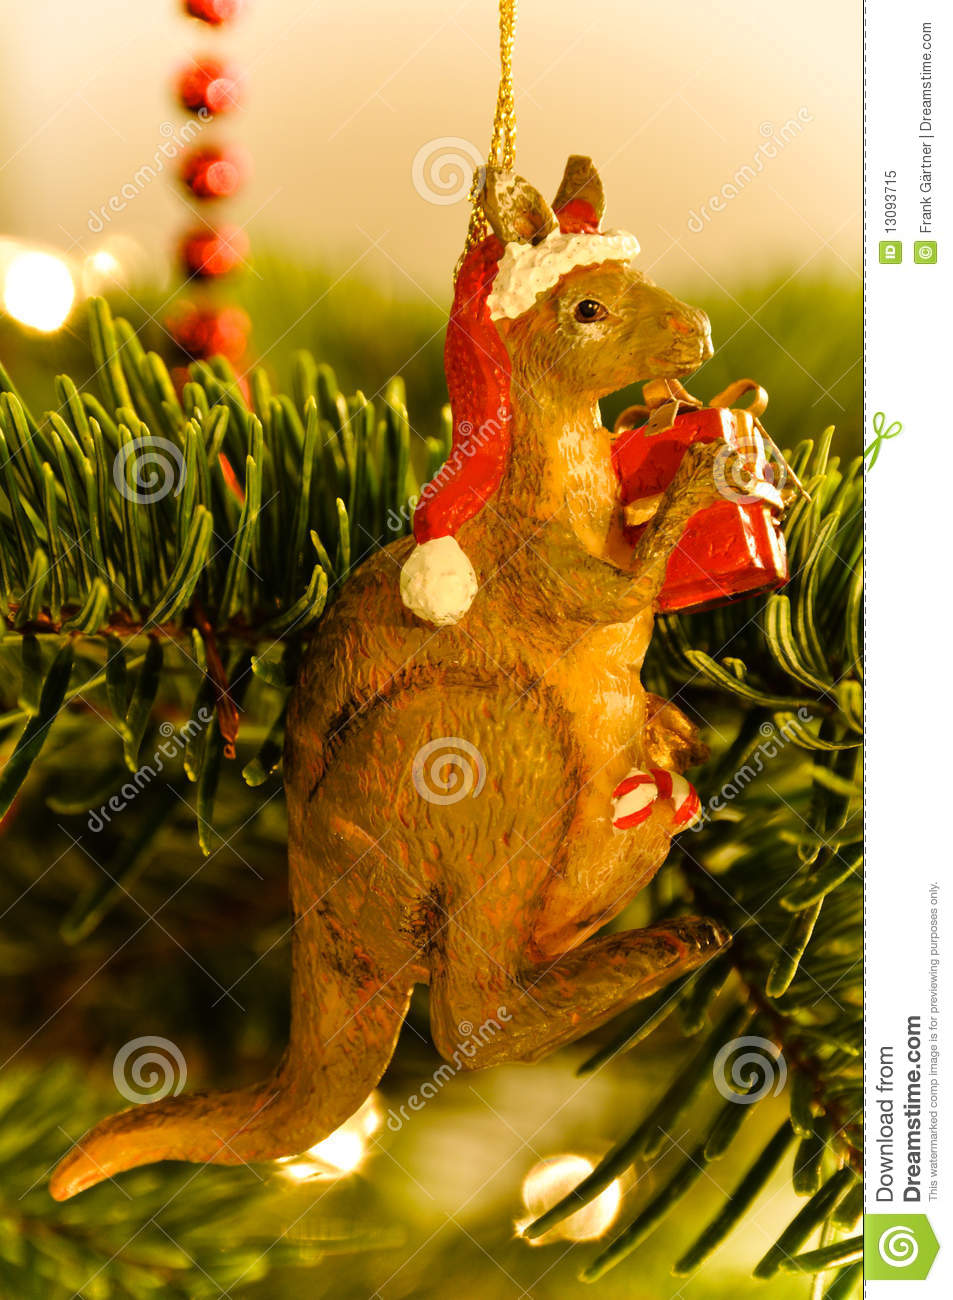 Australian kangaroo christmas tree stock image image for Australian christmas decoration ideas